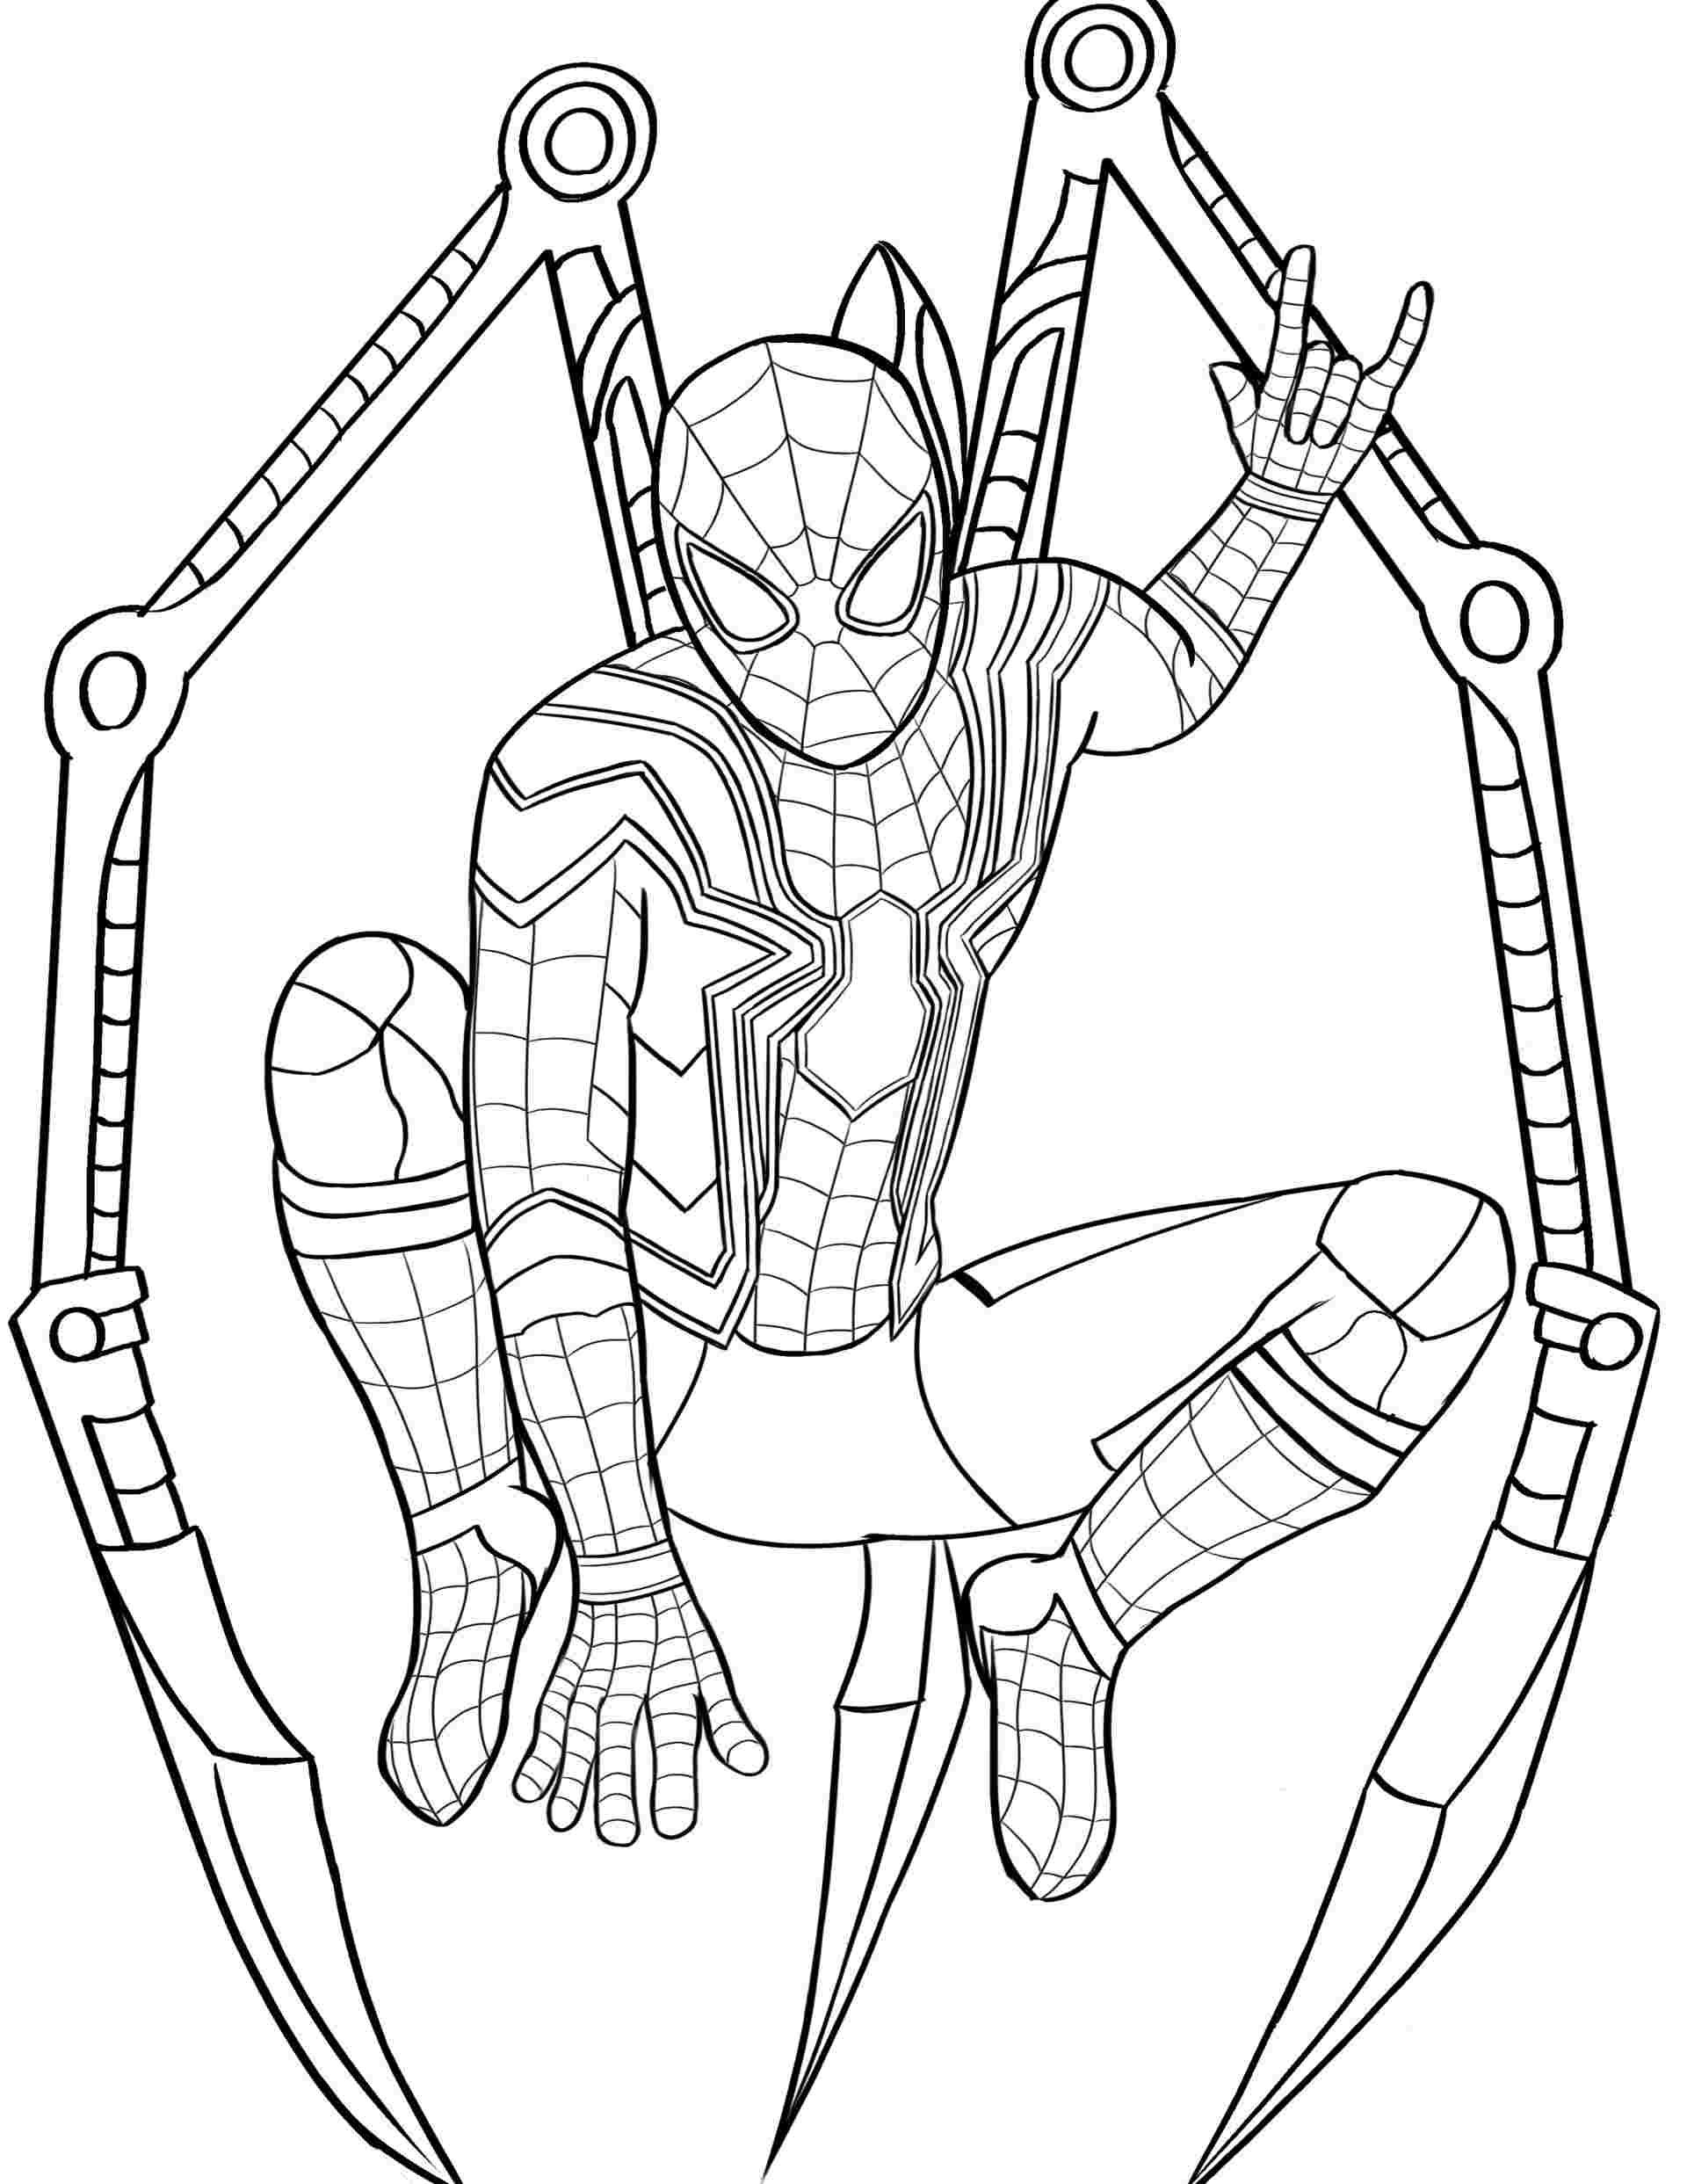 Iron Spider Coloringes Spiderman For Color Spider Coloring Page Avengers Coloring Superhero Coloring Pages